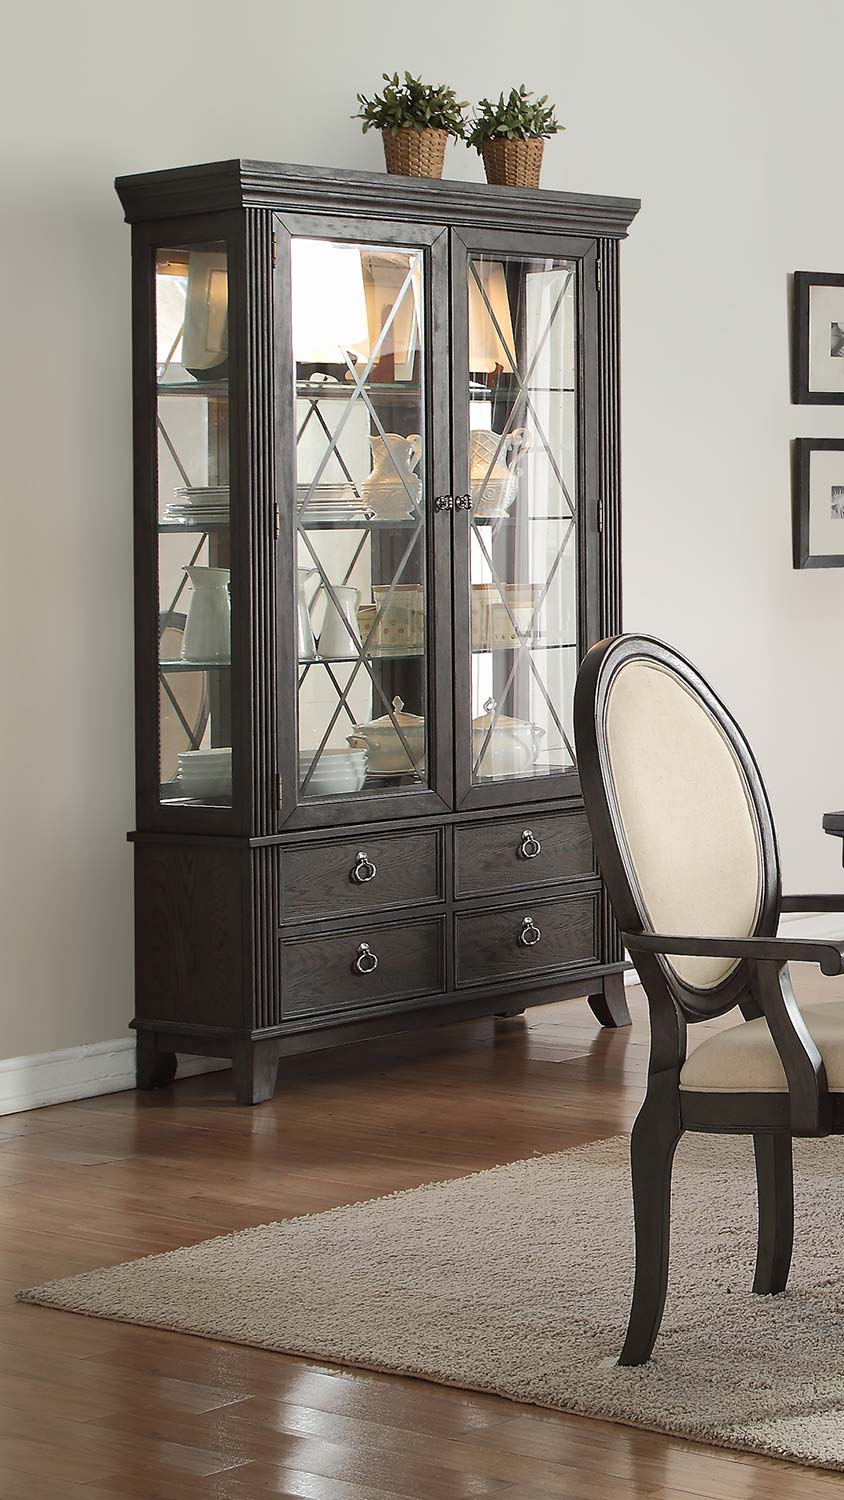 Homelegance Lindley China Cabinet - Walnut/Dusty Gray